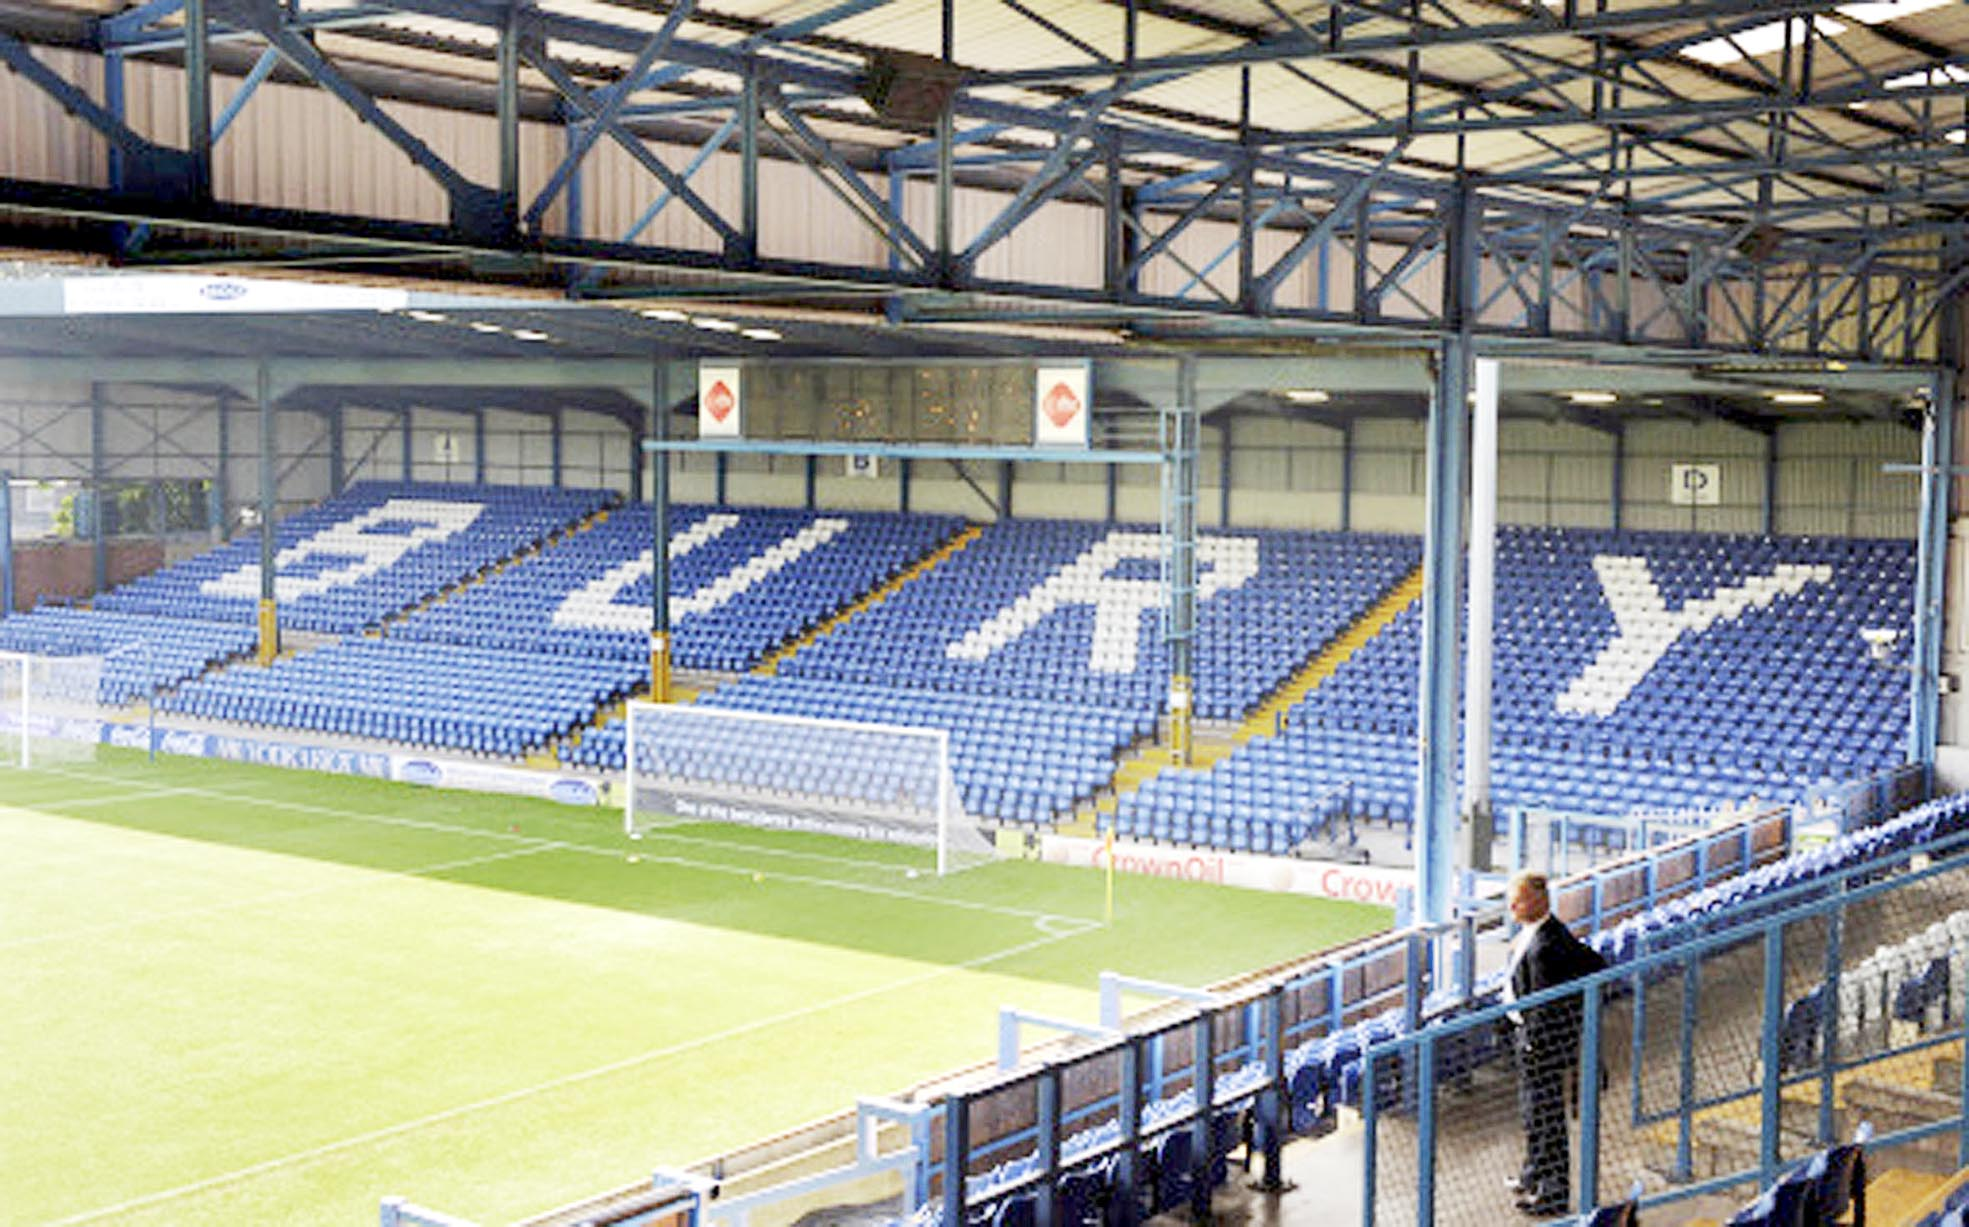 Bury FC supporters' bid to protect JD Stadium for future generations